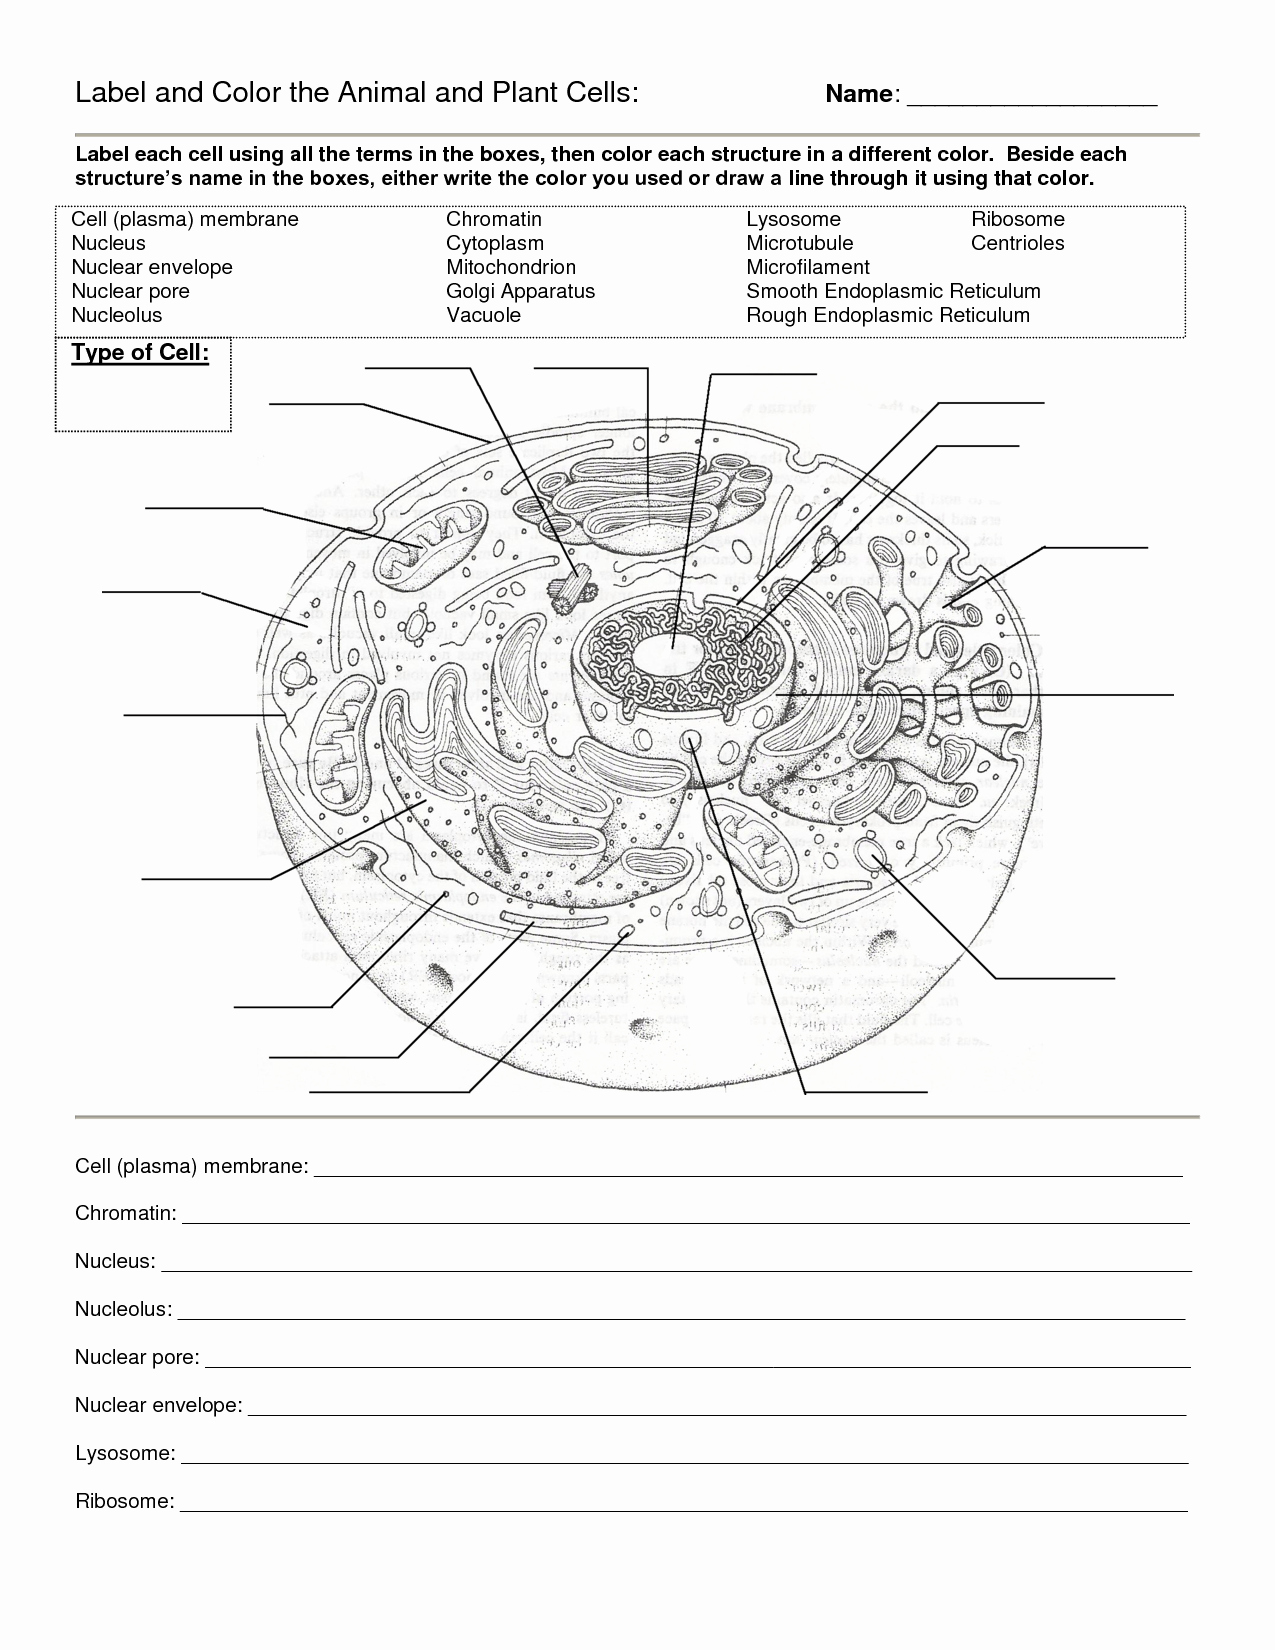 Cells Alive Cell Cycle Worksheet Lovely Mitosis and Cancer Worksheet